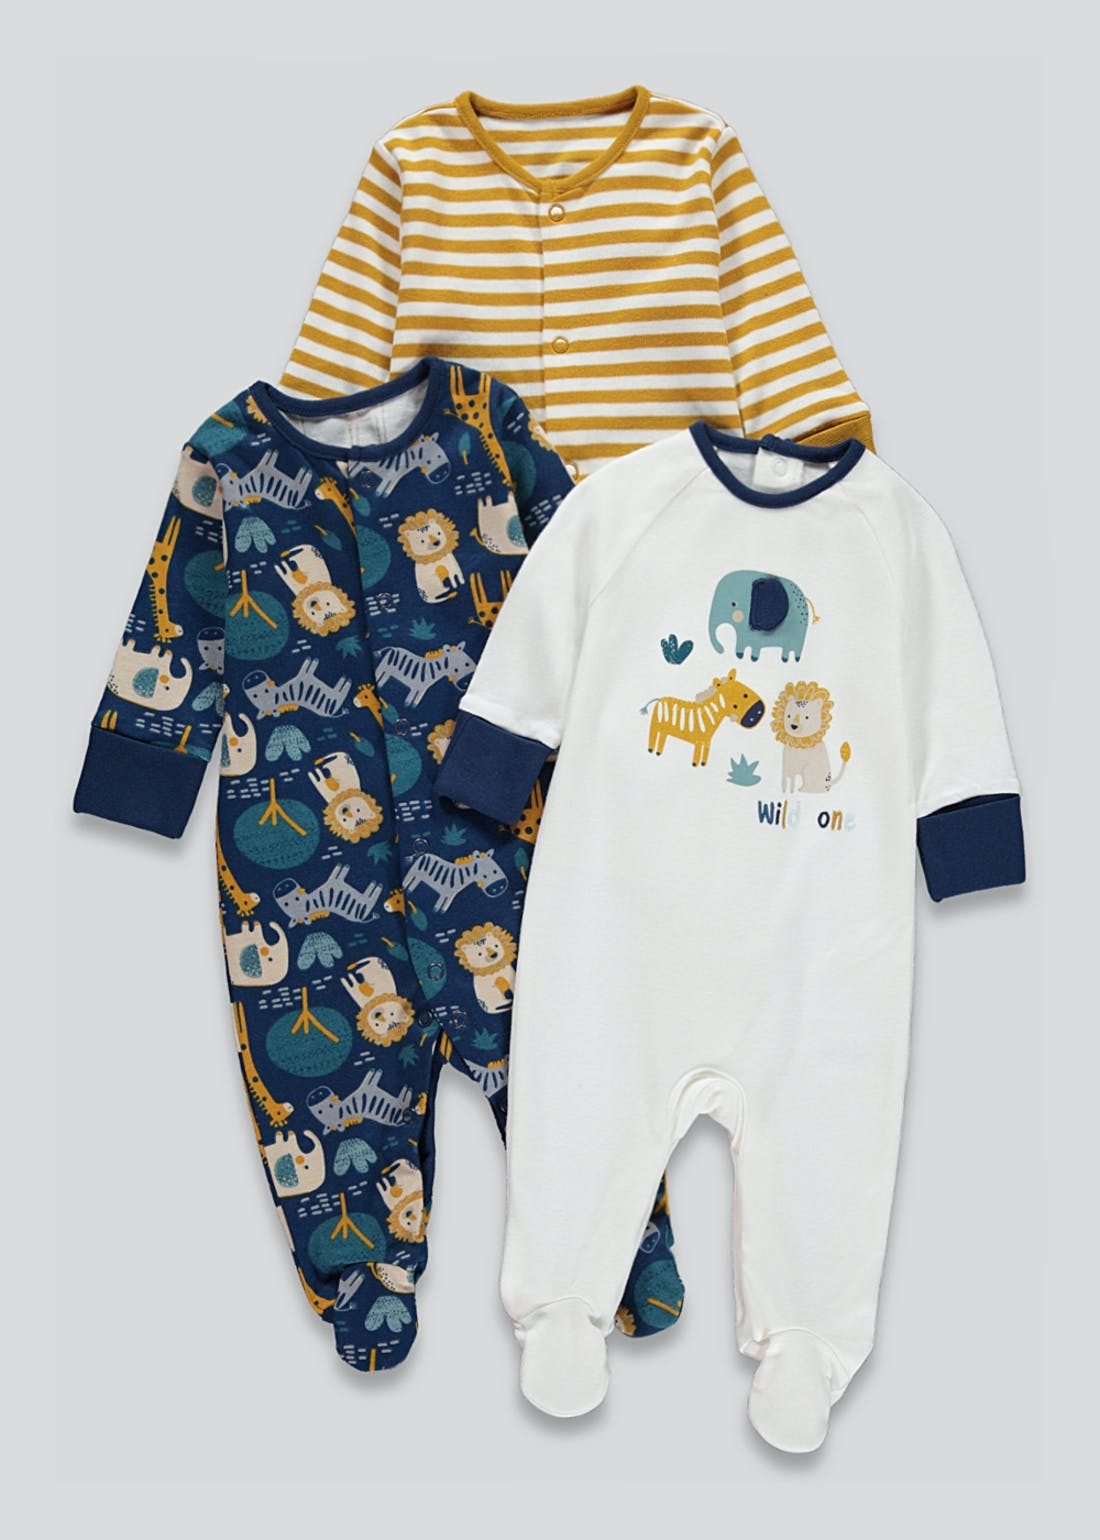 Unisex 3 Pack Safari Baby Grows (Tiny Baby-18mths)